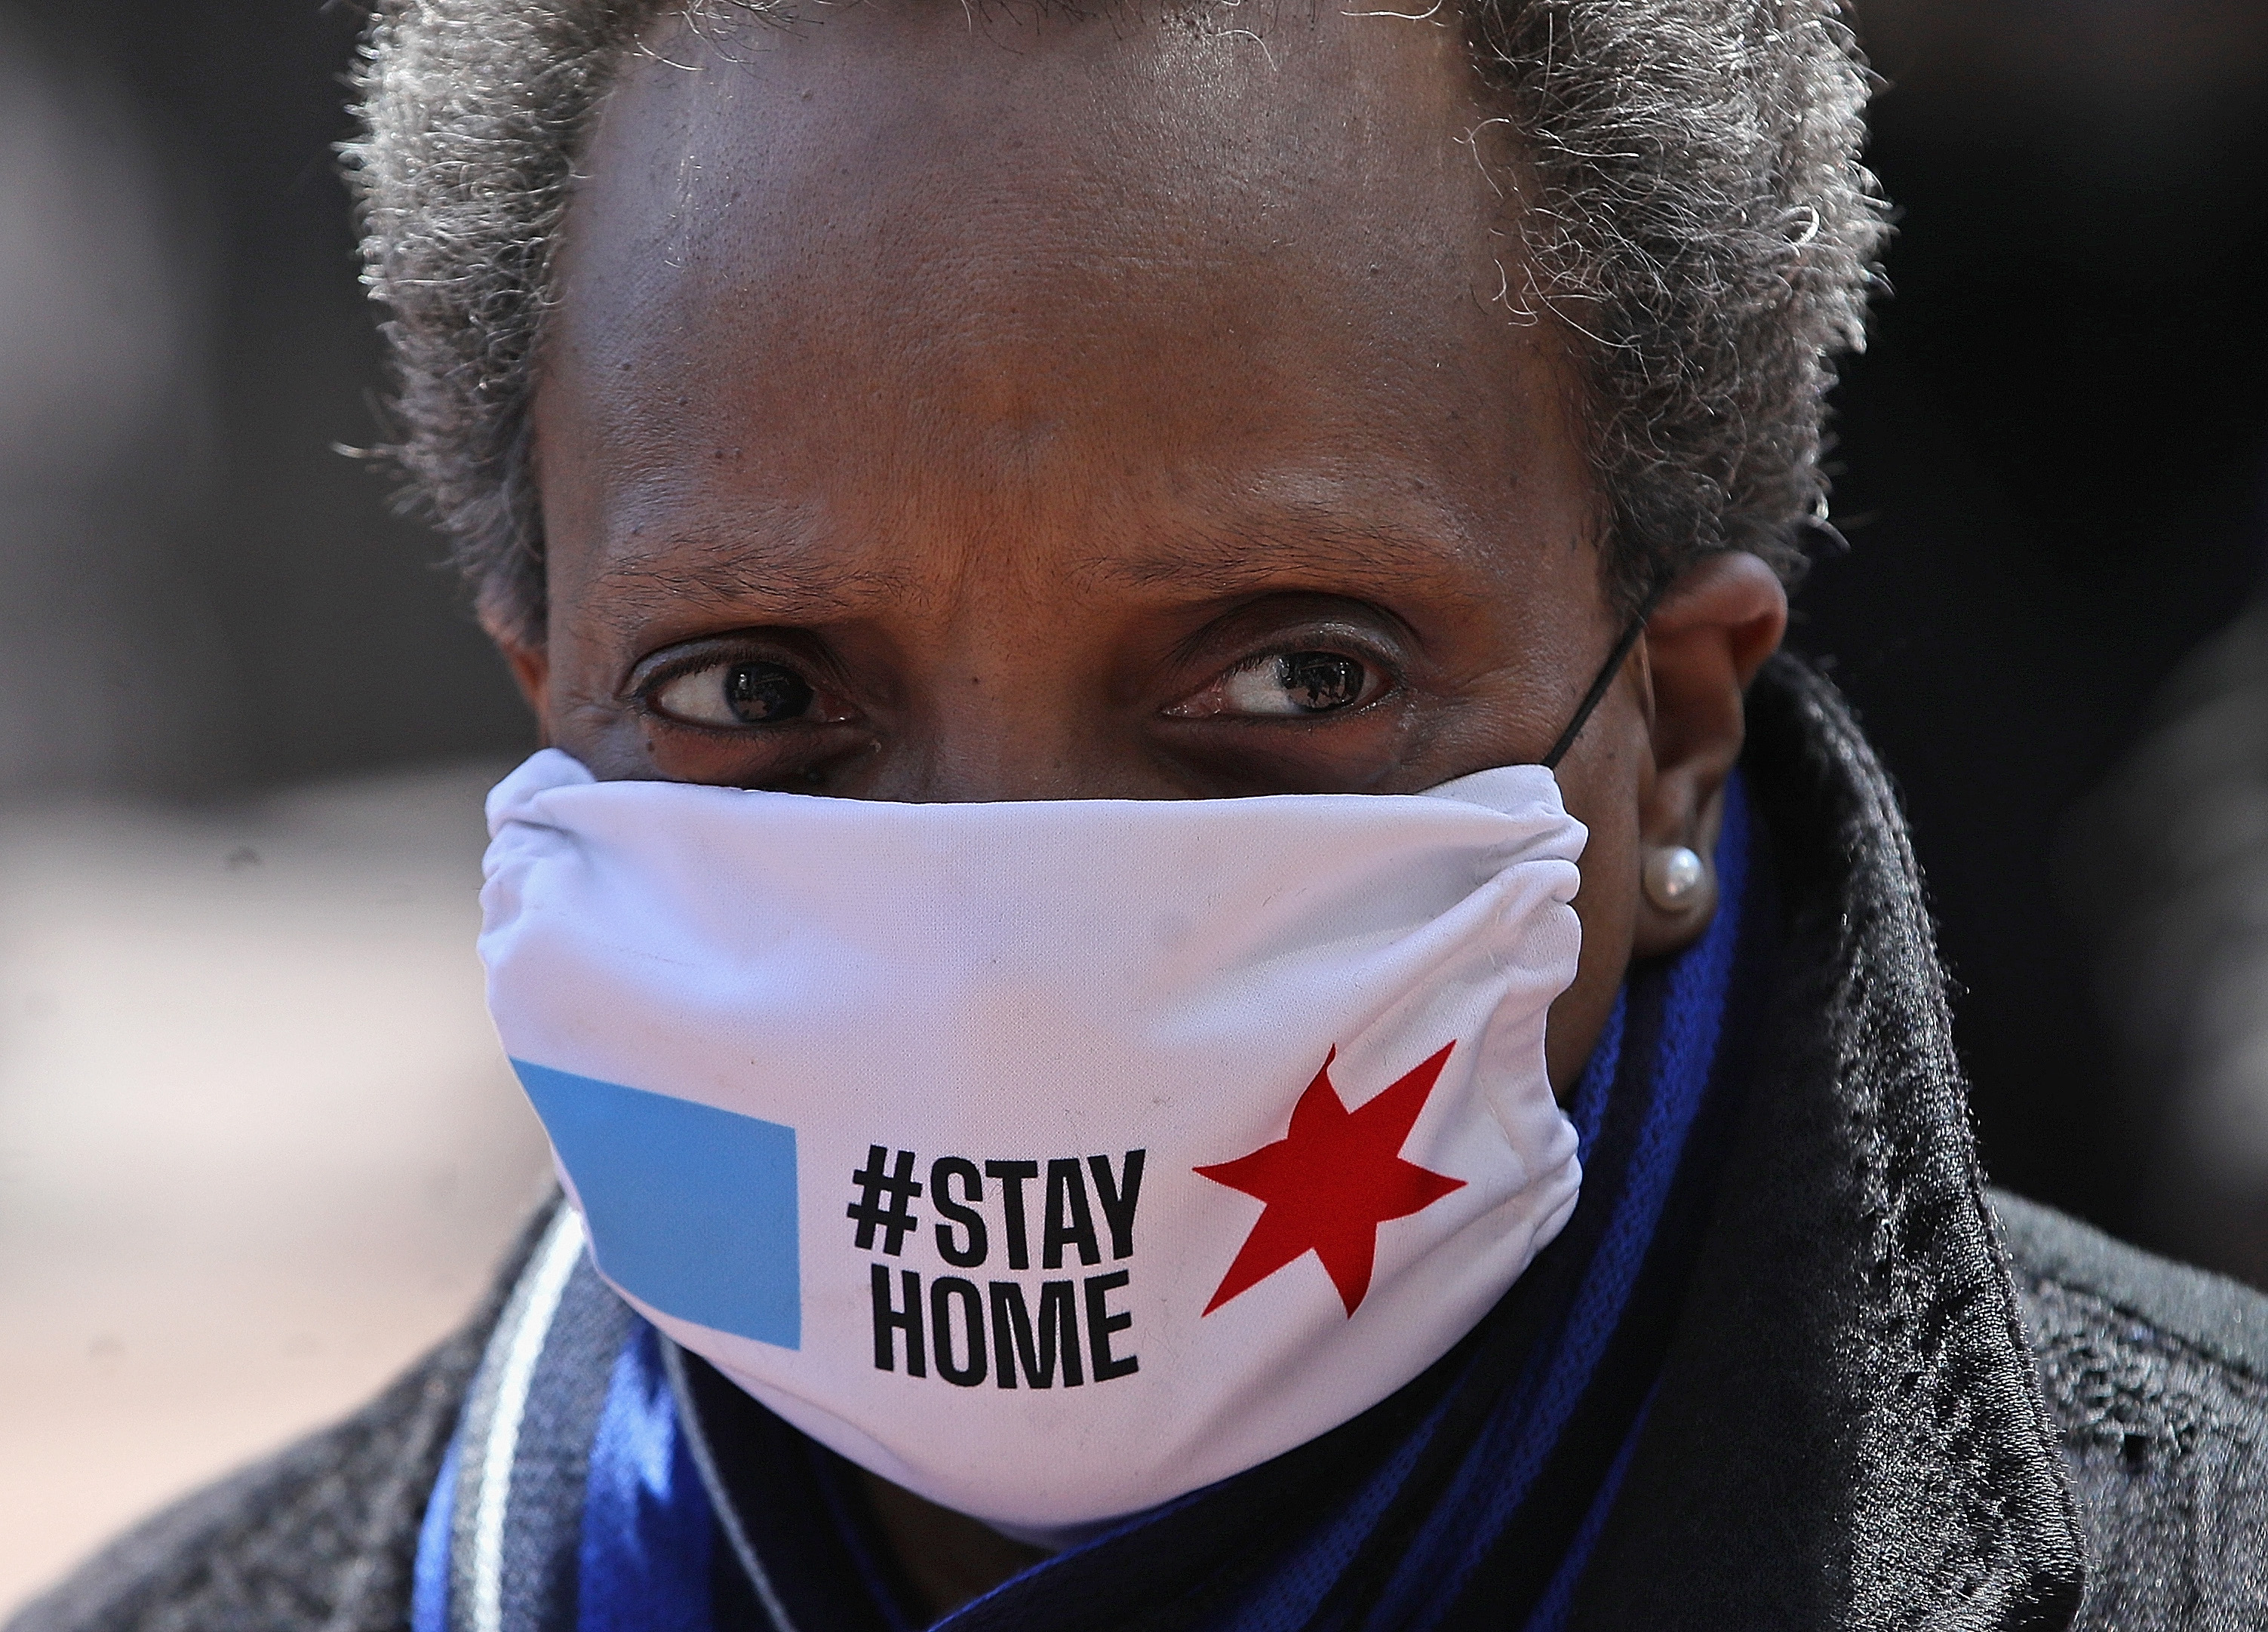 CHICAGO, ILLINOIS - APRIL 16: Chicago mayor Lori Lightfoot arrives at Wrigley Field on April 16, 2020 in Chicago Illinois. Wrigley Field has been converted to a temporary satellite food packing and distribution center in cooperation with the Lakeville Food Pantry to support ongoing relief efforts underway in the city as a result of the COVID-19 pandemic. (Jonathan Daniel/Getty Images)